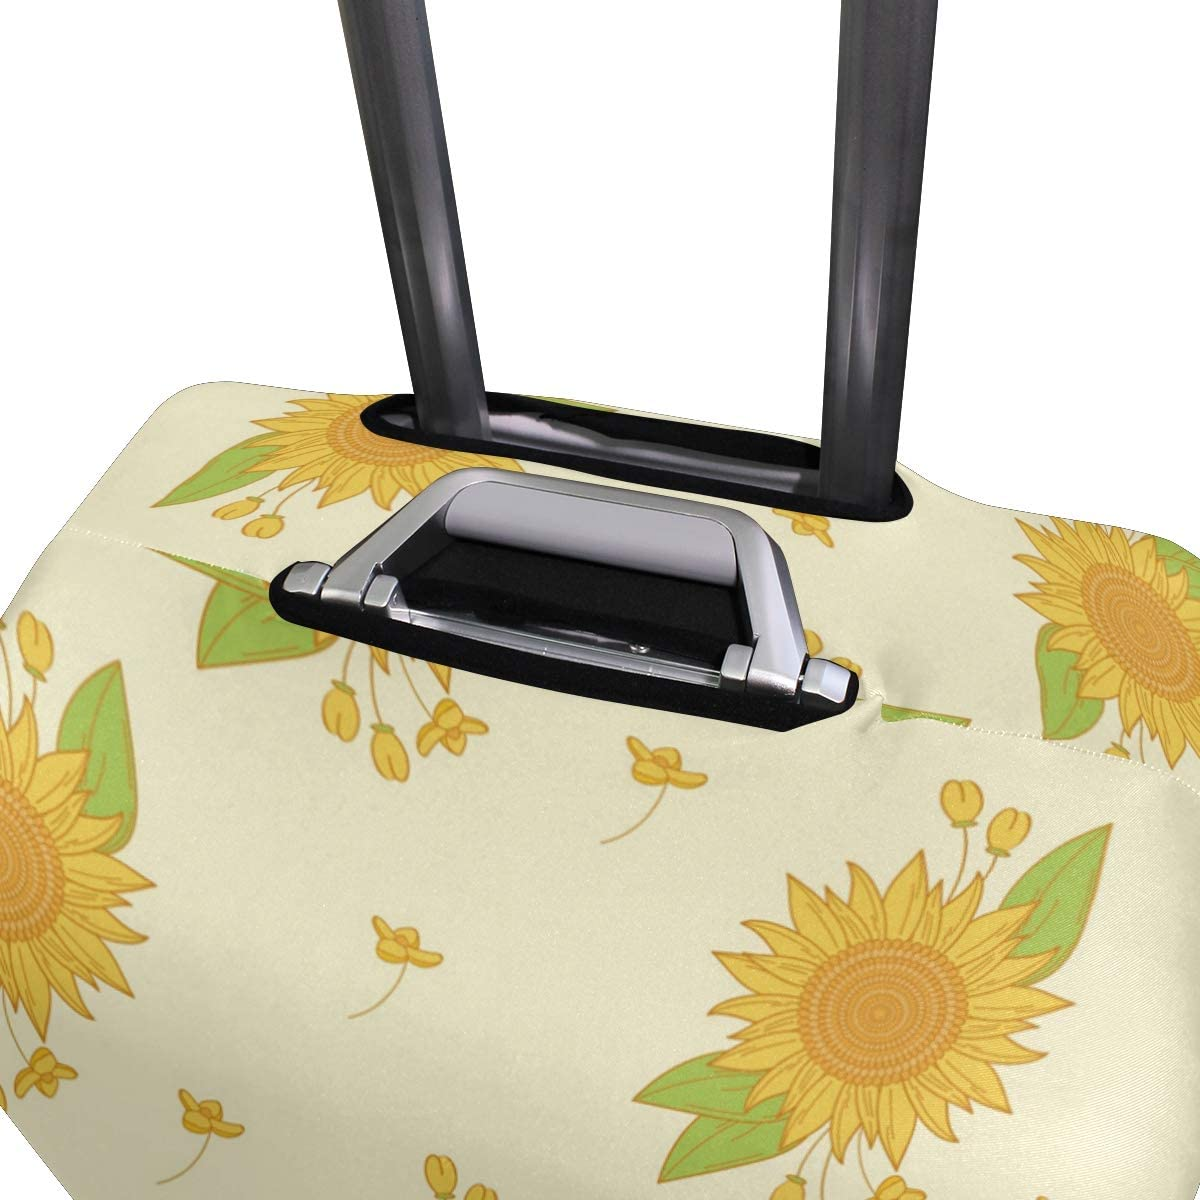 Travel Luggage Cover Yellow Sunflowers Green Leaves Suitcase Protector